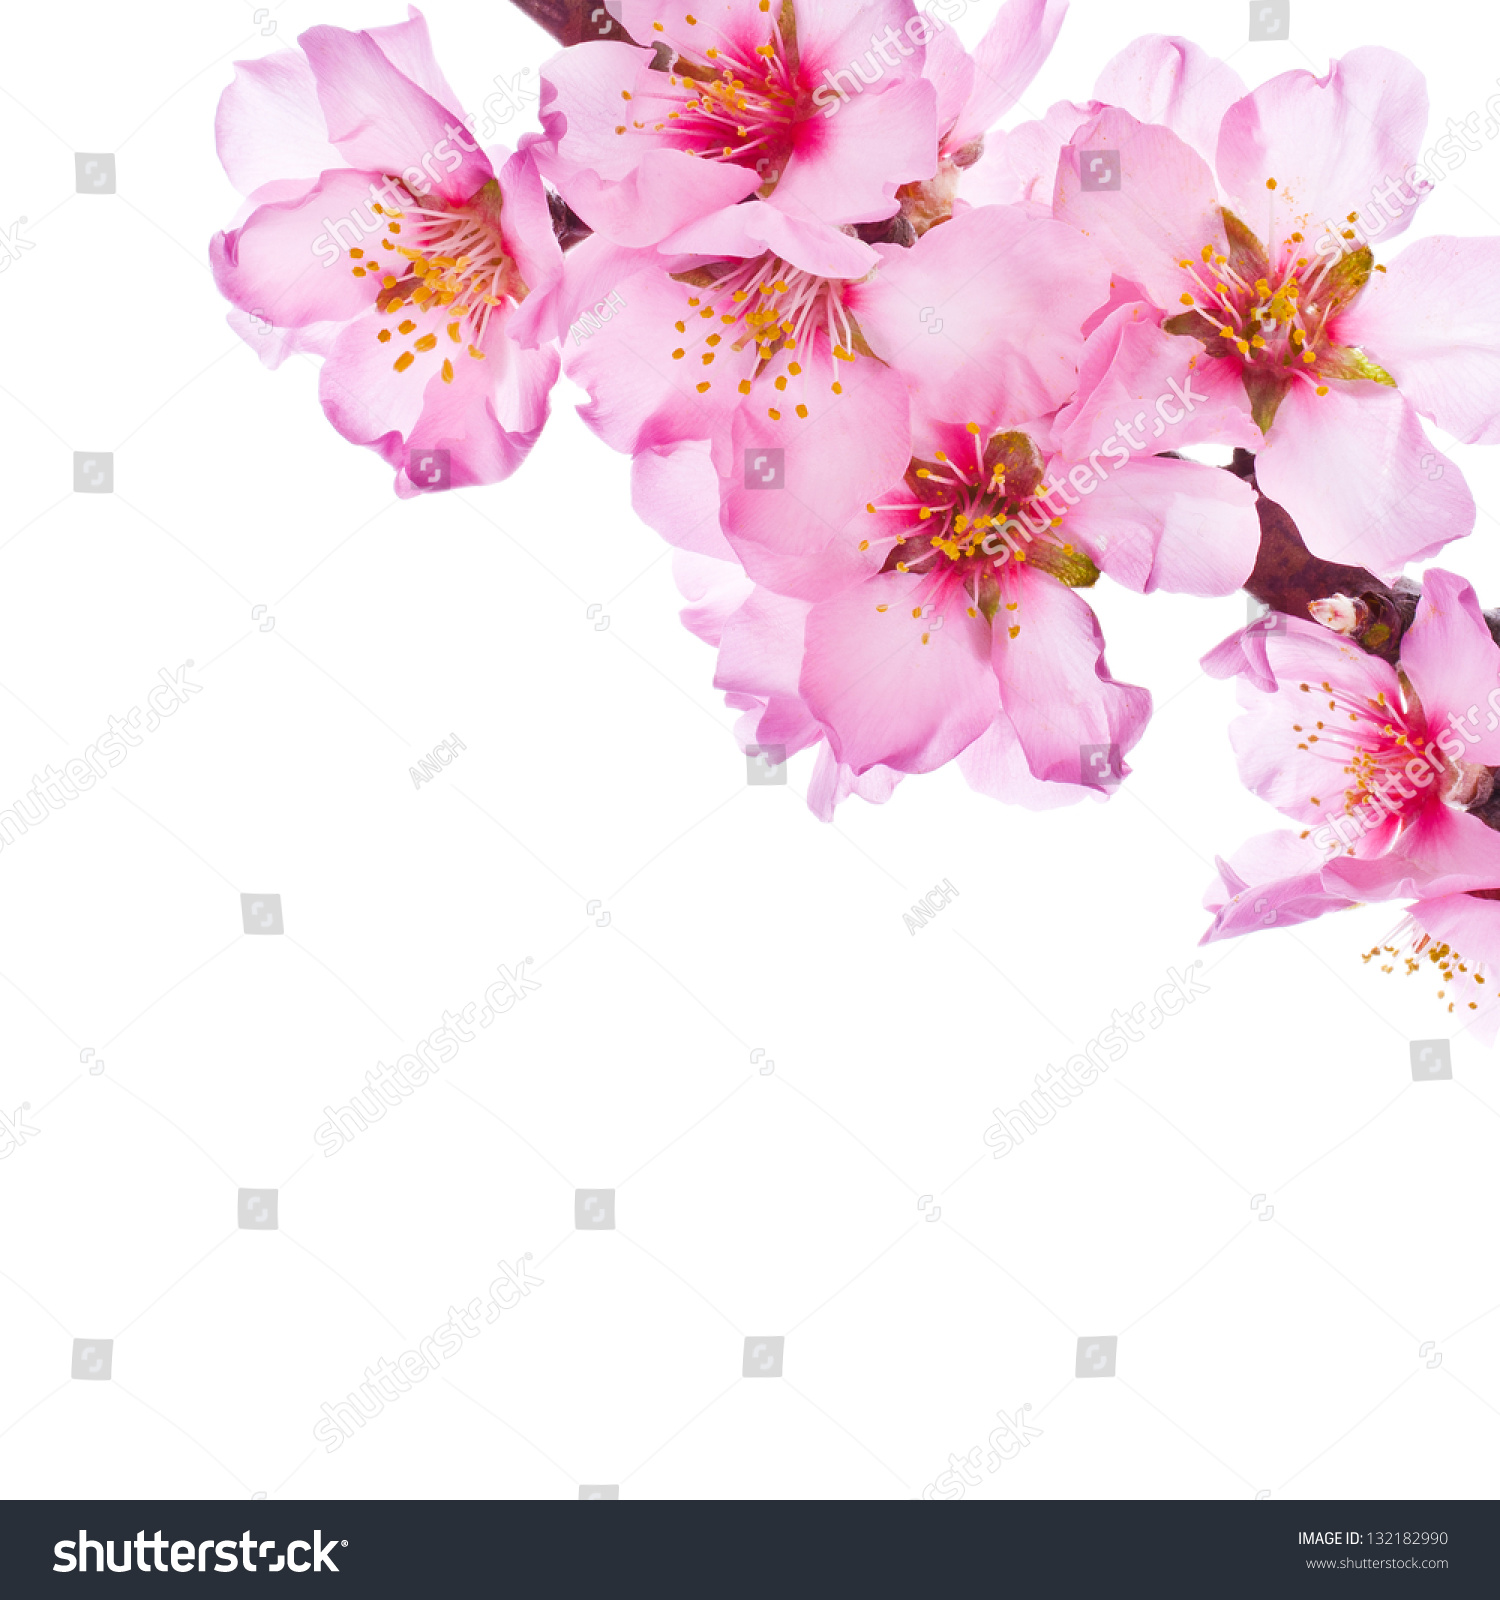 Spring Flowering Branches Pink Flowers No Stock Shutterstock